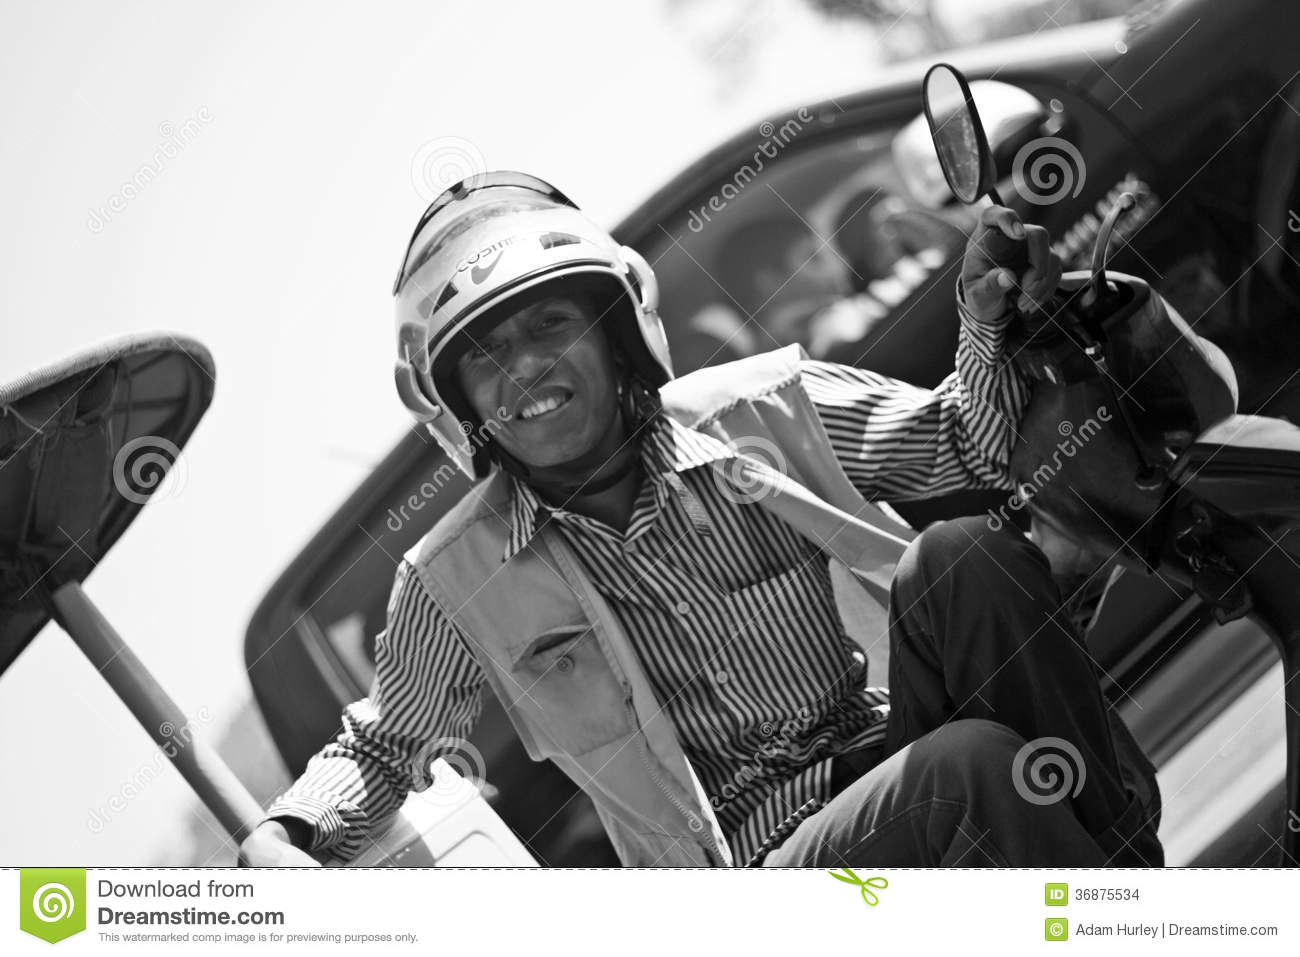 Download Driver di Tuk Tuk immagine stock editoriale. Immagine di cambodia - 36875534